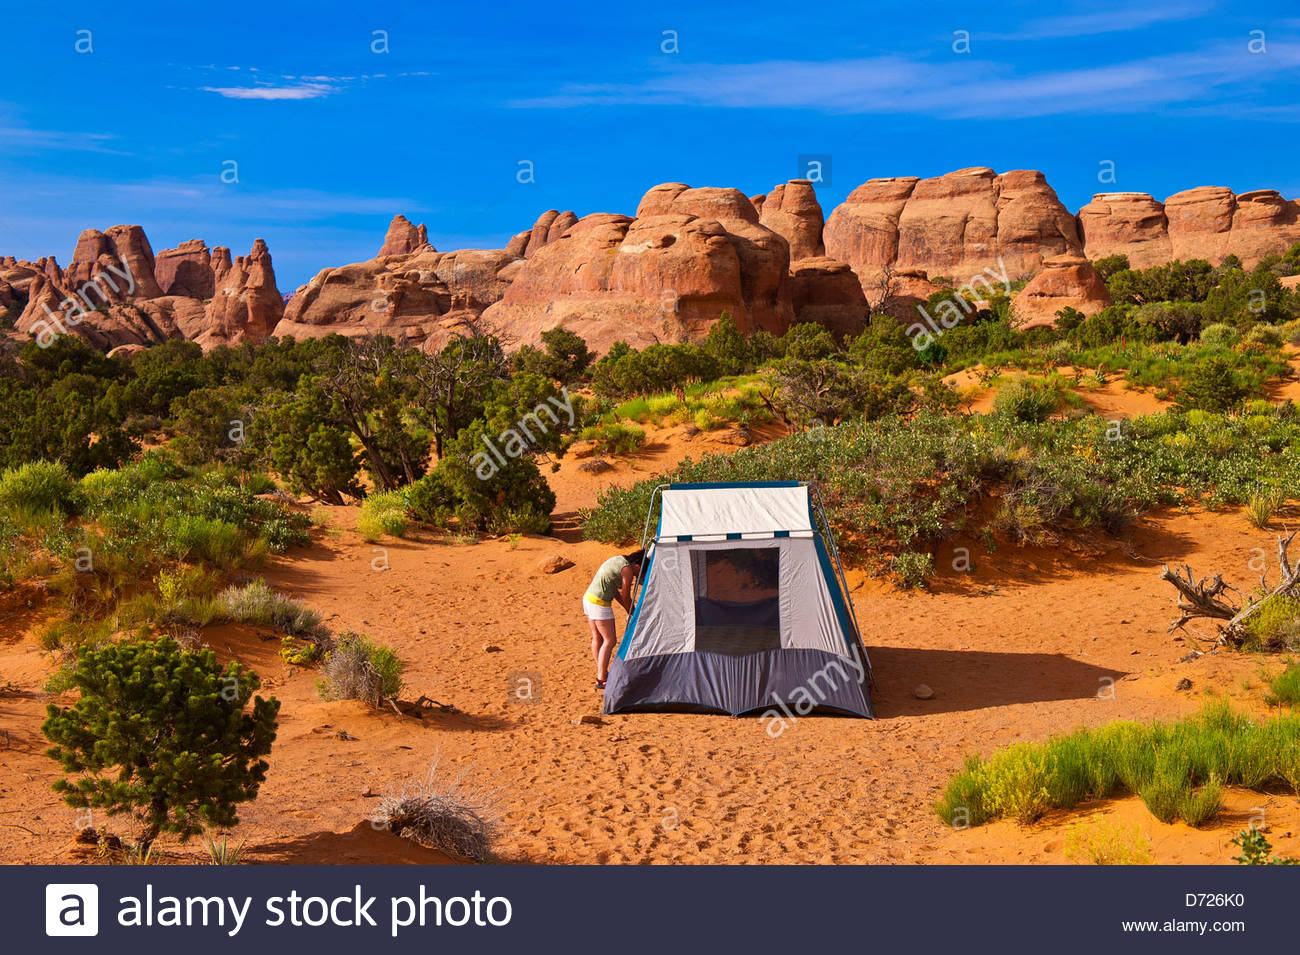 Camping at Devils Garden Campground in Arches National Park, near ...